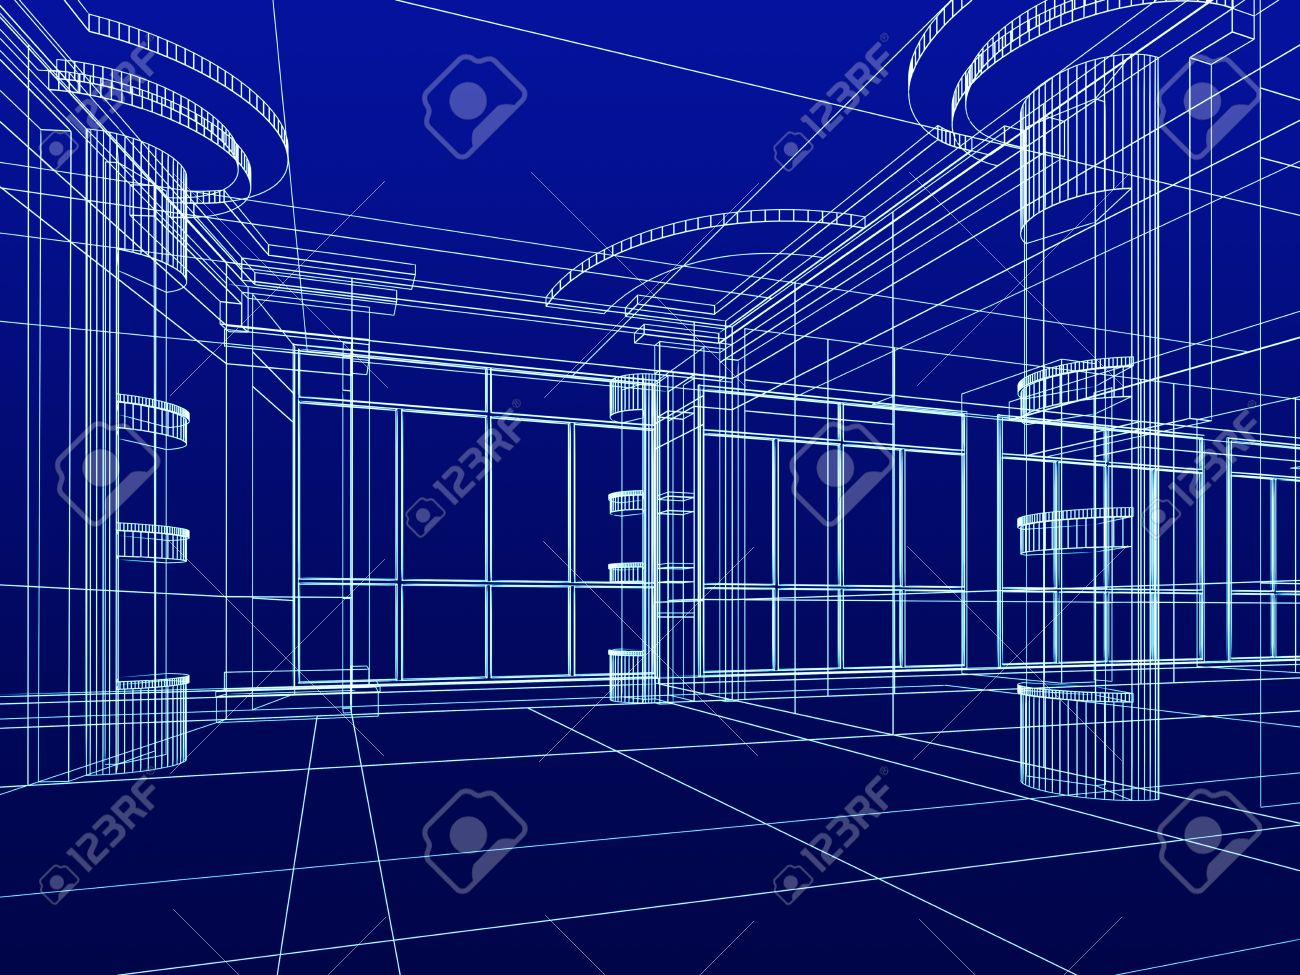 bstract Design Sketch Of Modern Office Interior Stock Photo ... - ^